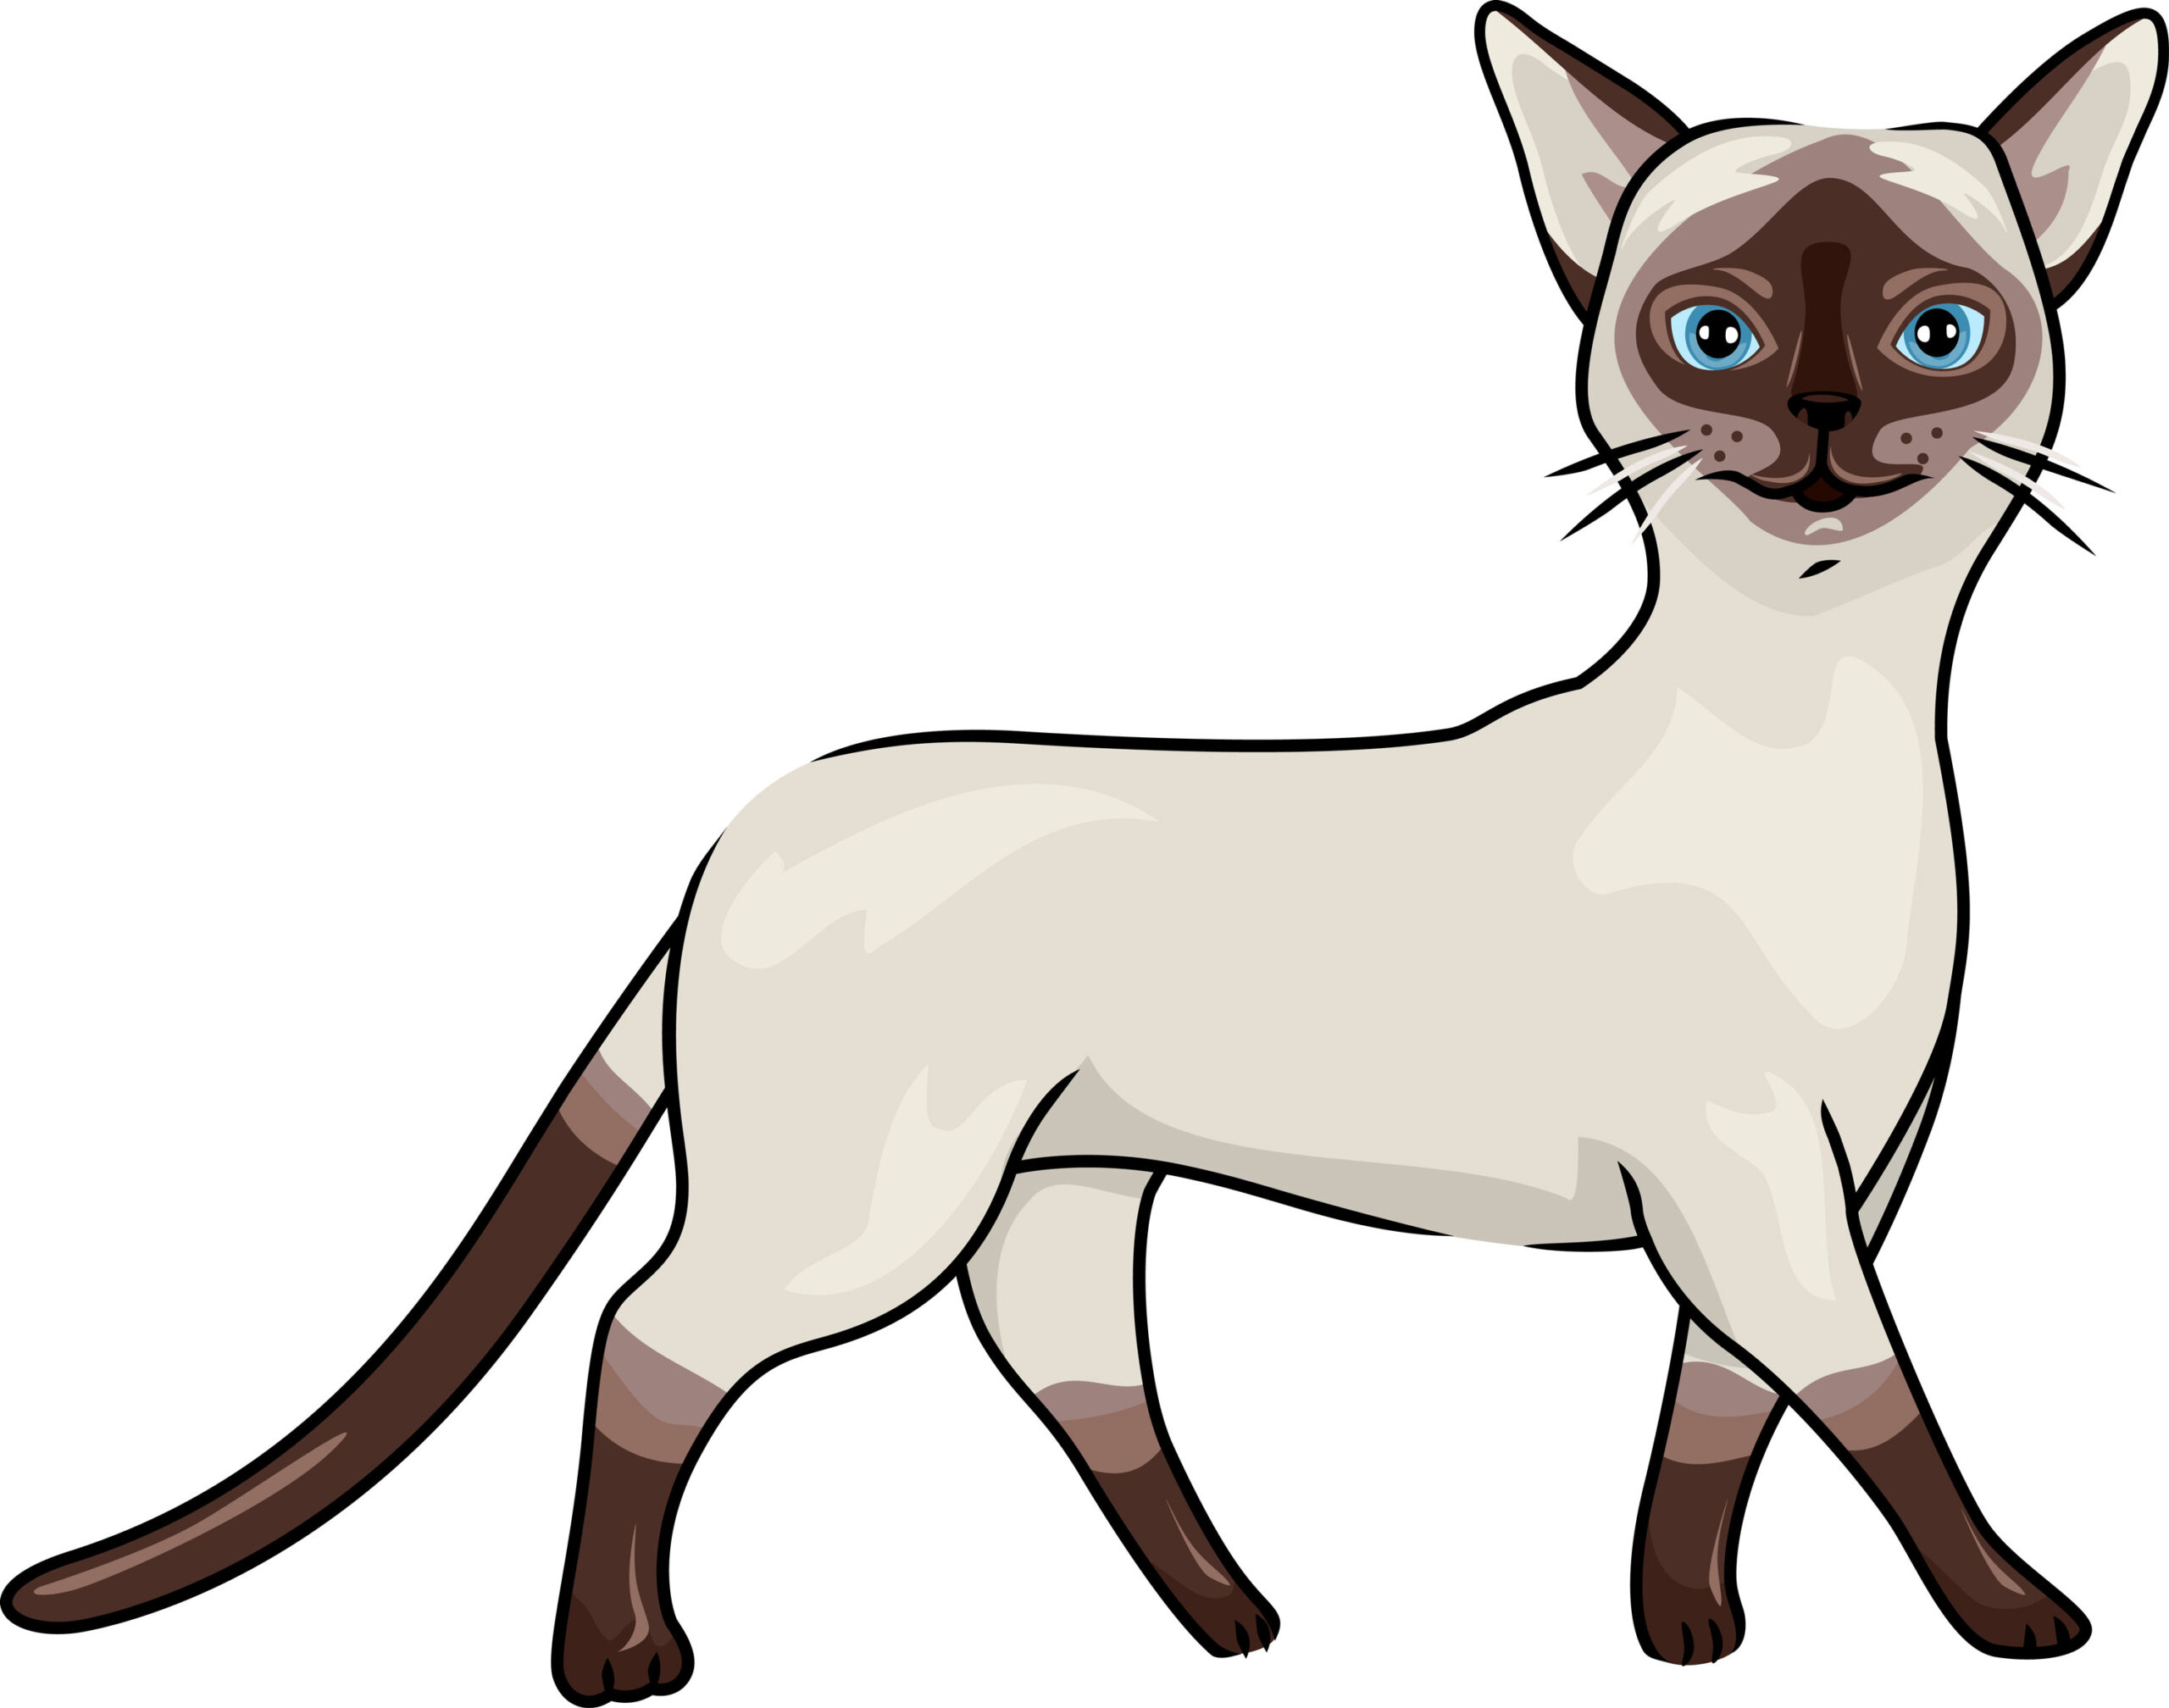 A Siamese cat drawing on a white background